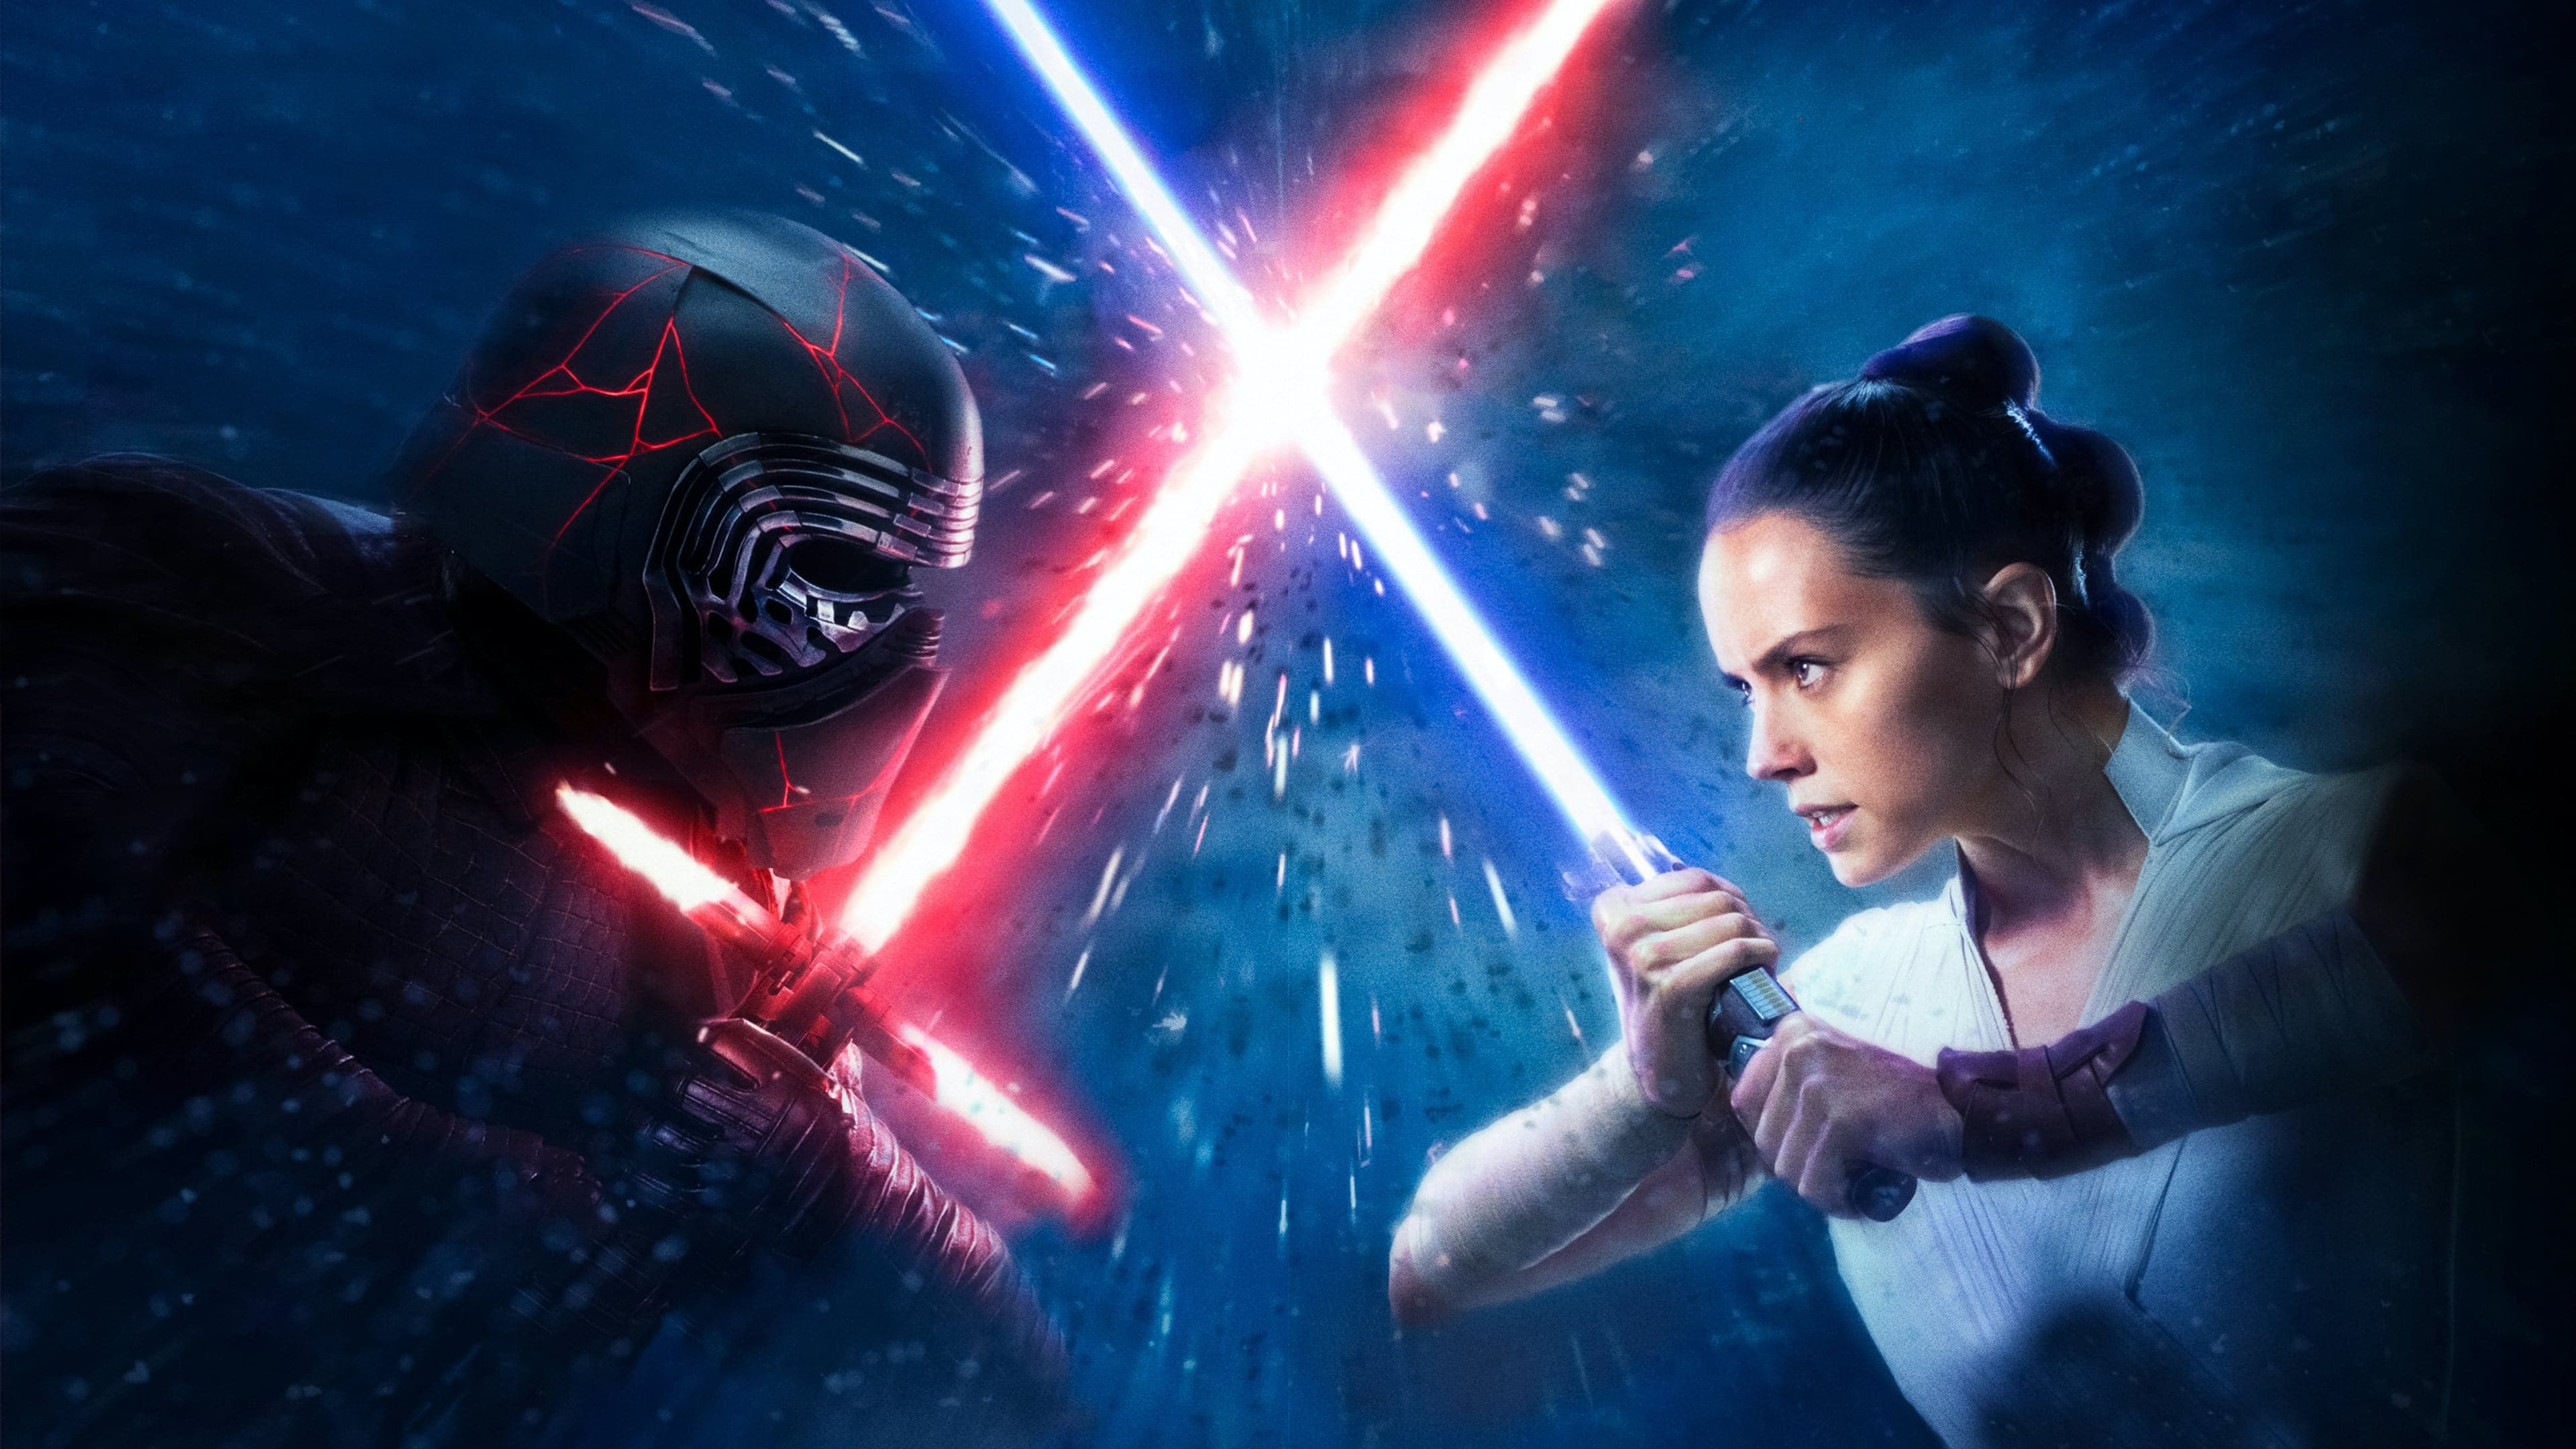 Star Wars: Rise Of Skywalker Review - All the Tropes and Nostalgia In The World Cannot Redeem This Movie